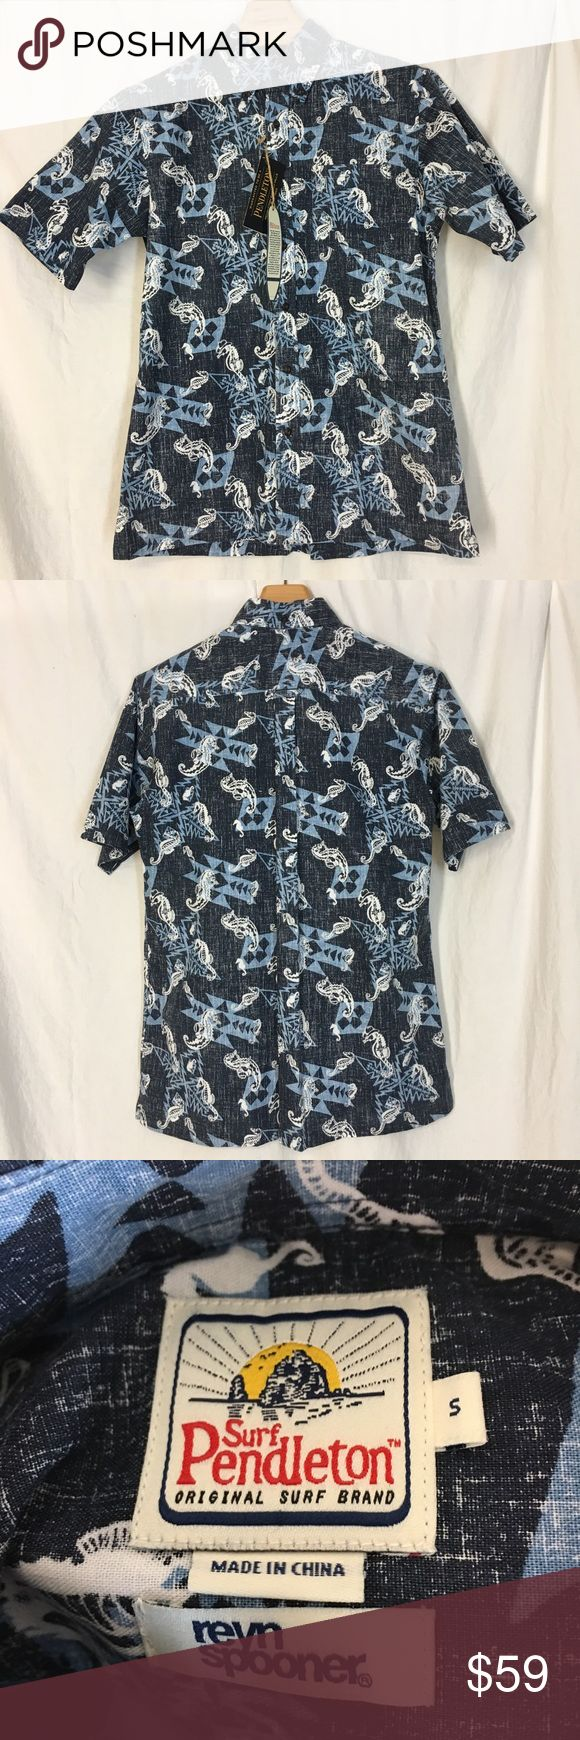 SURF PENDLETON REYN SPOONER Shirt Limited Small SURF PENDLETON REYN SPOONER Casual Hawaiian Shirt 2015 Limited Addition  Small Surf Pendleton original surf brand Ryan Spooner Hawaiian shirt seahorse pattern cowboy hat pattern new with tags retail price $119  Item measured laying flat measurement doubled when necessary   Chest 44 inches length shoulder to hem 29 inches Pendleton Shirts Casual Button Down Shirts